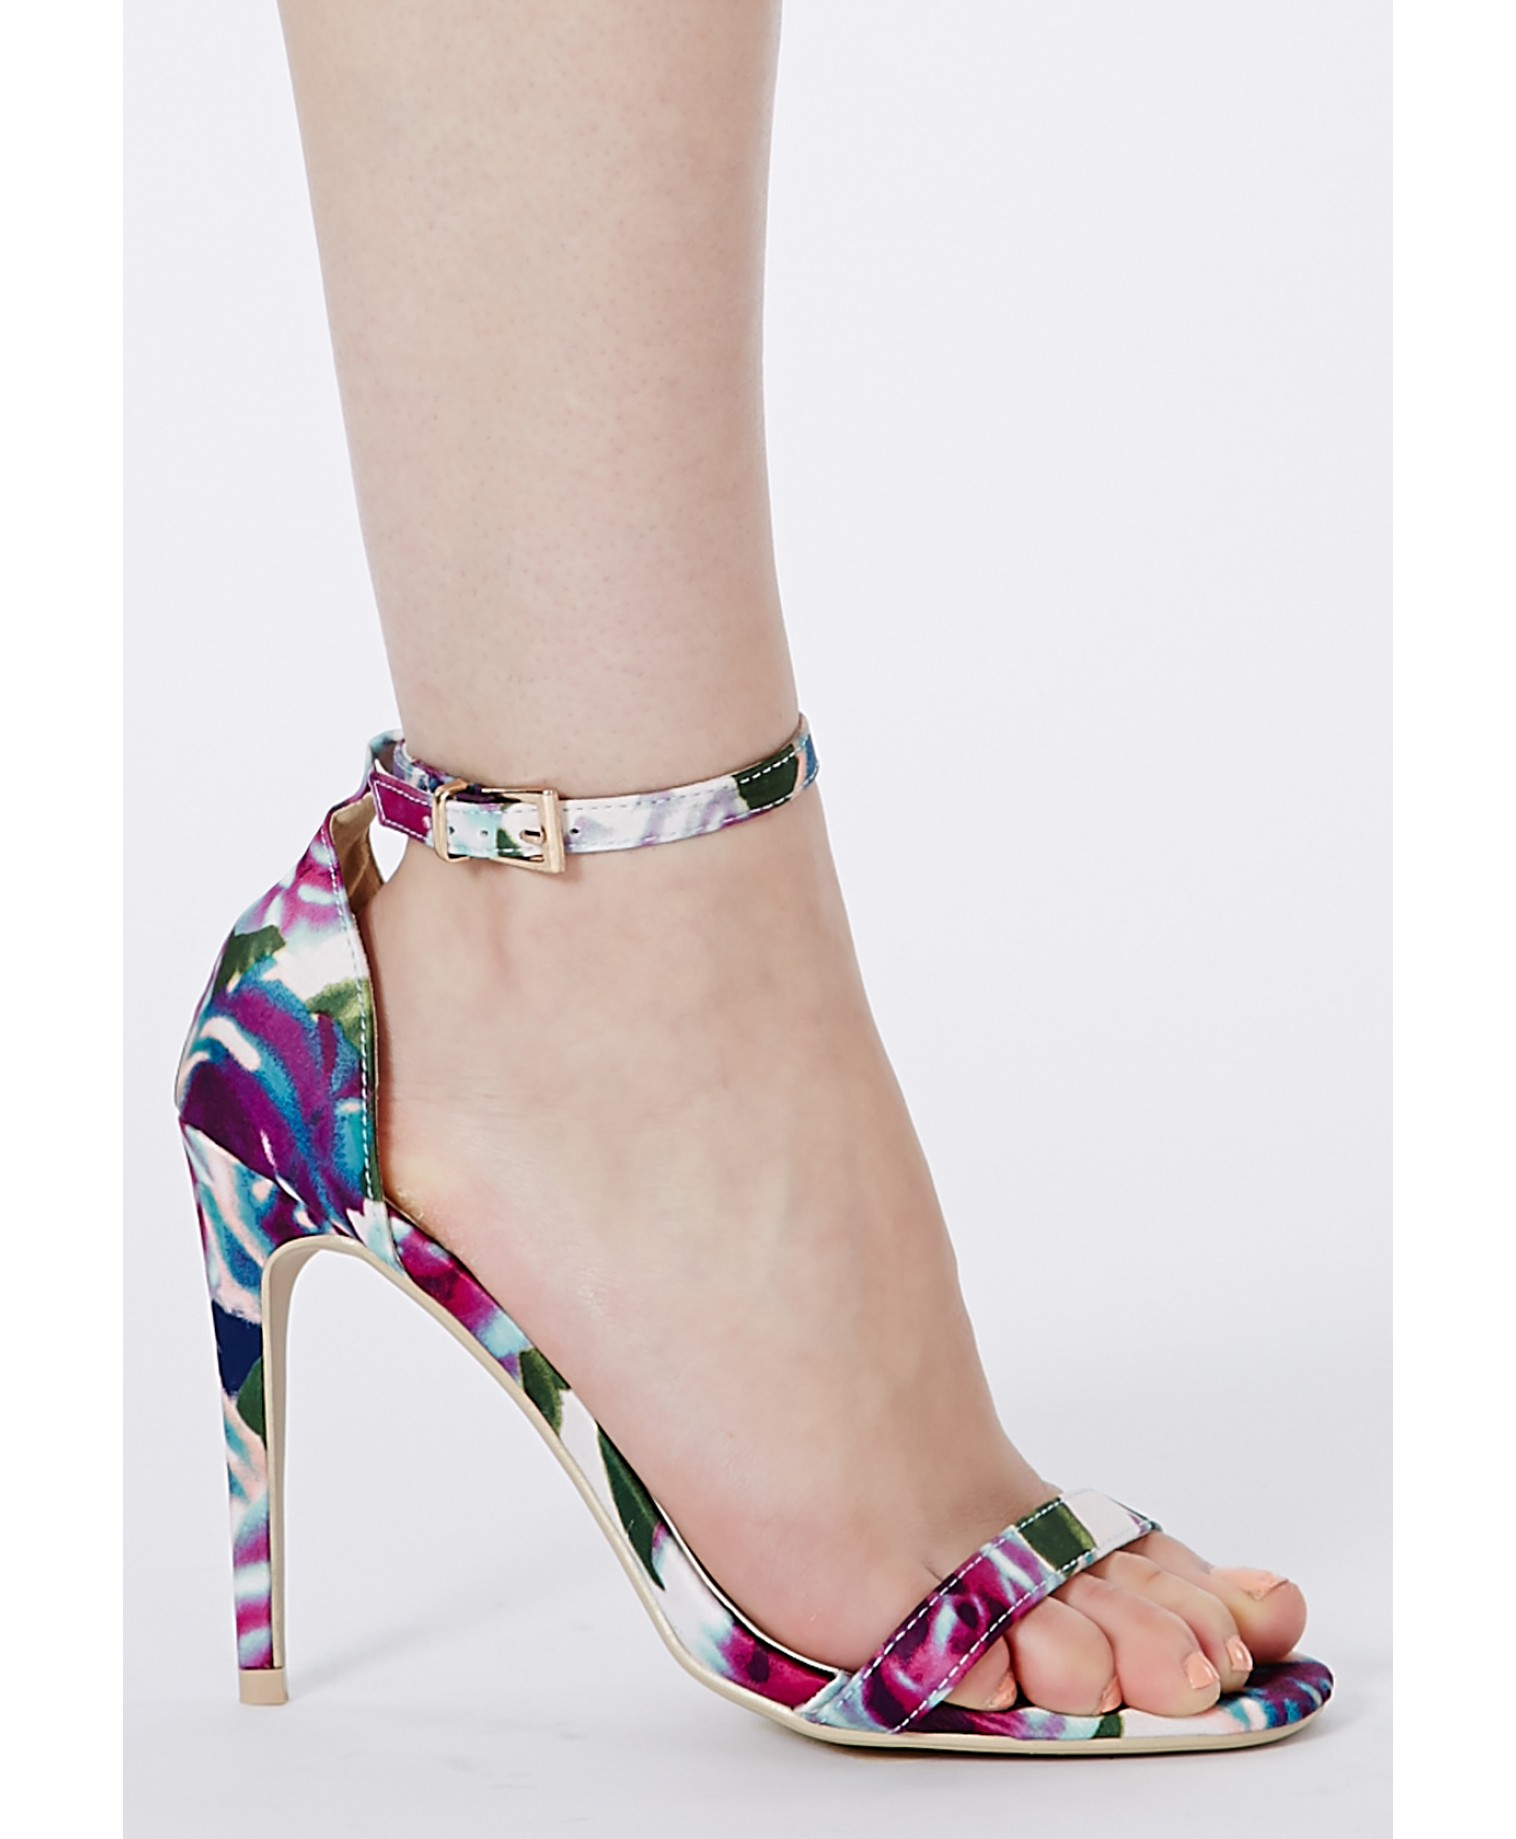 Lyst - Missguided Misty Strappy Sandals In Floral Print